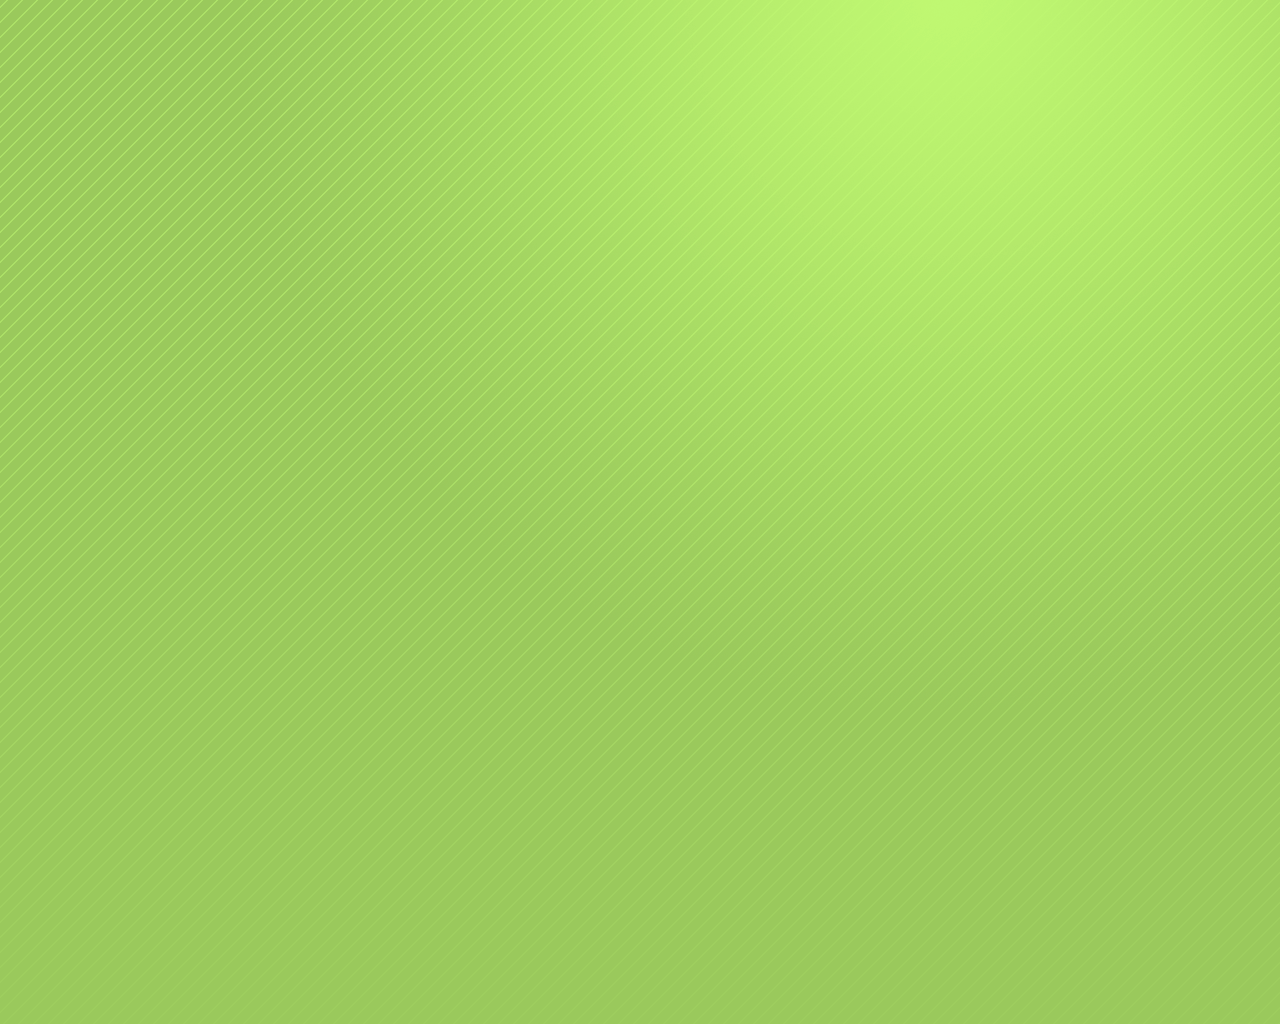 Plain Green Wallpapers Wallpaper Cave